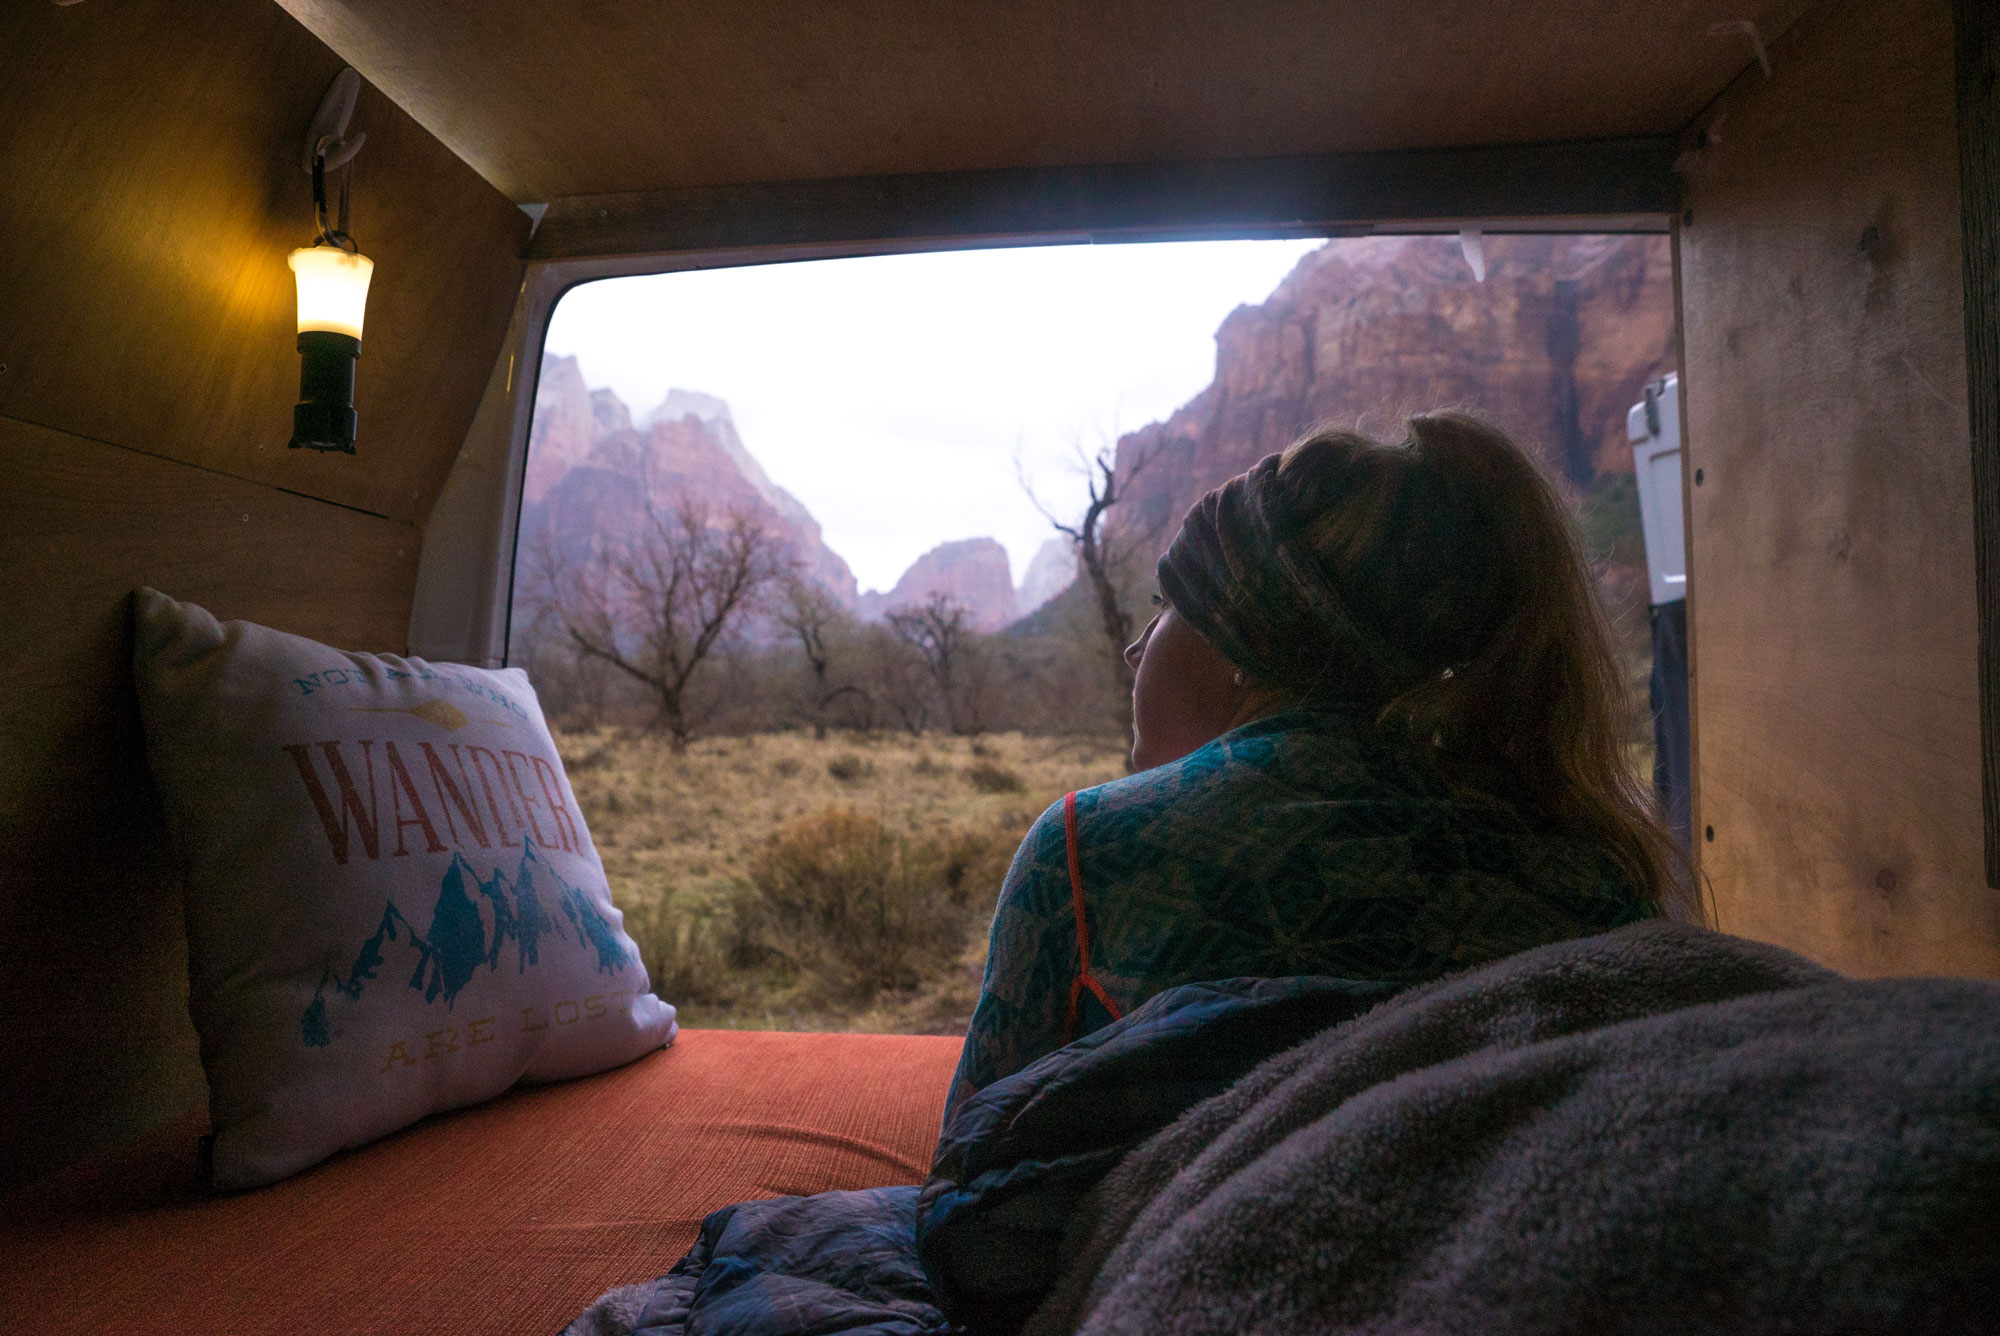 The morning routine in Zion, Utah.